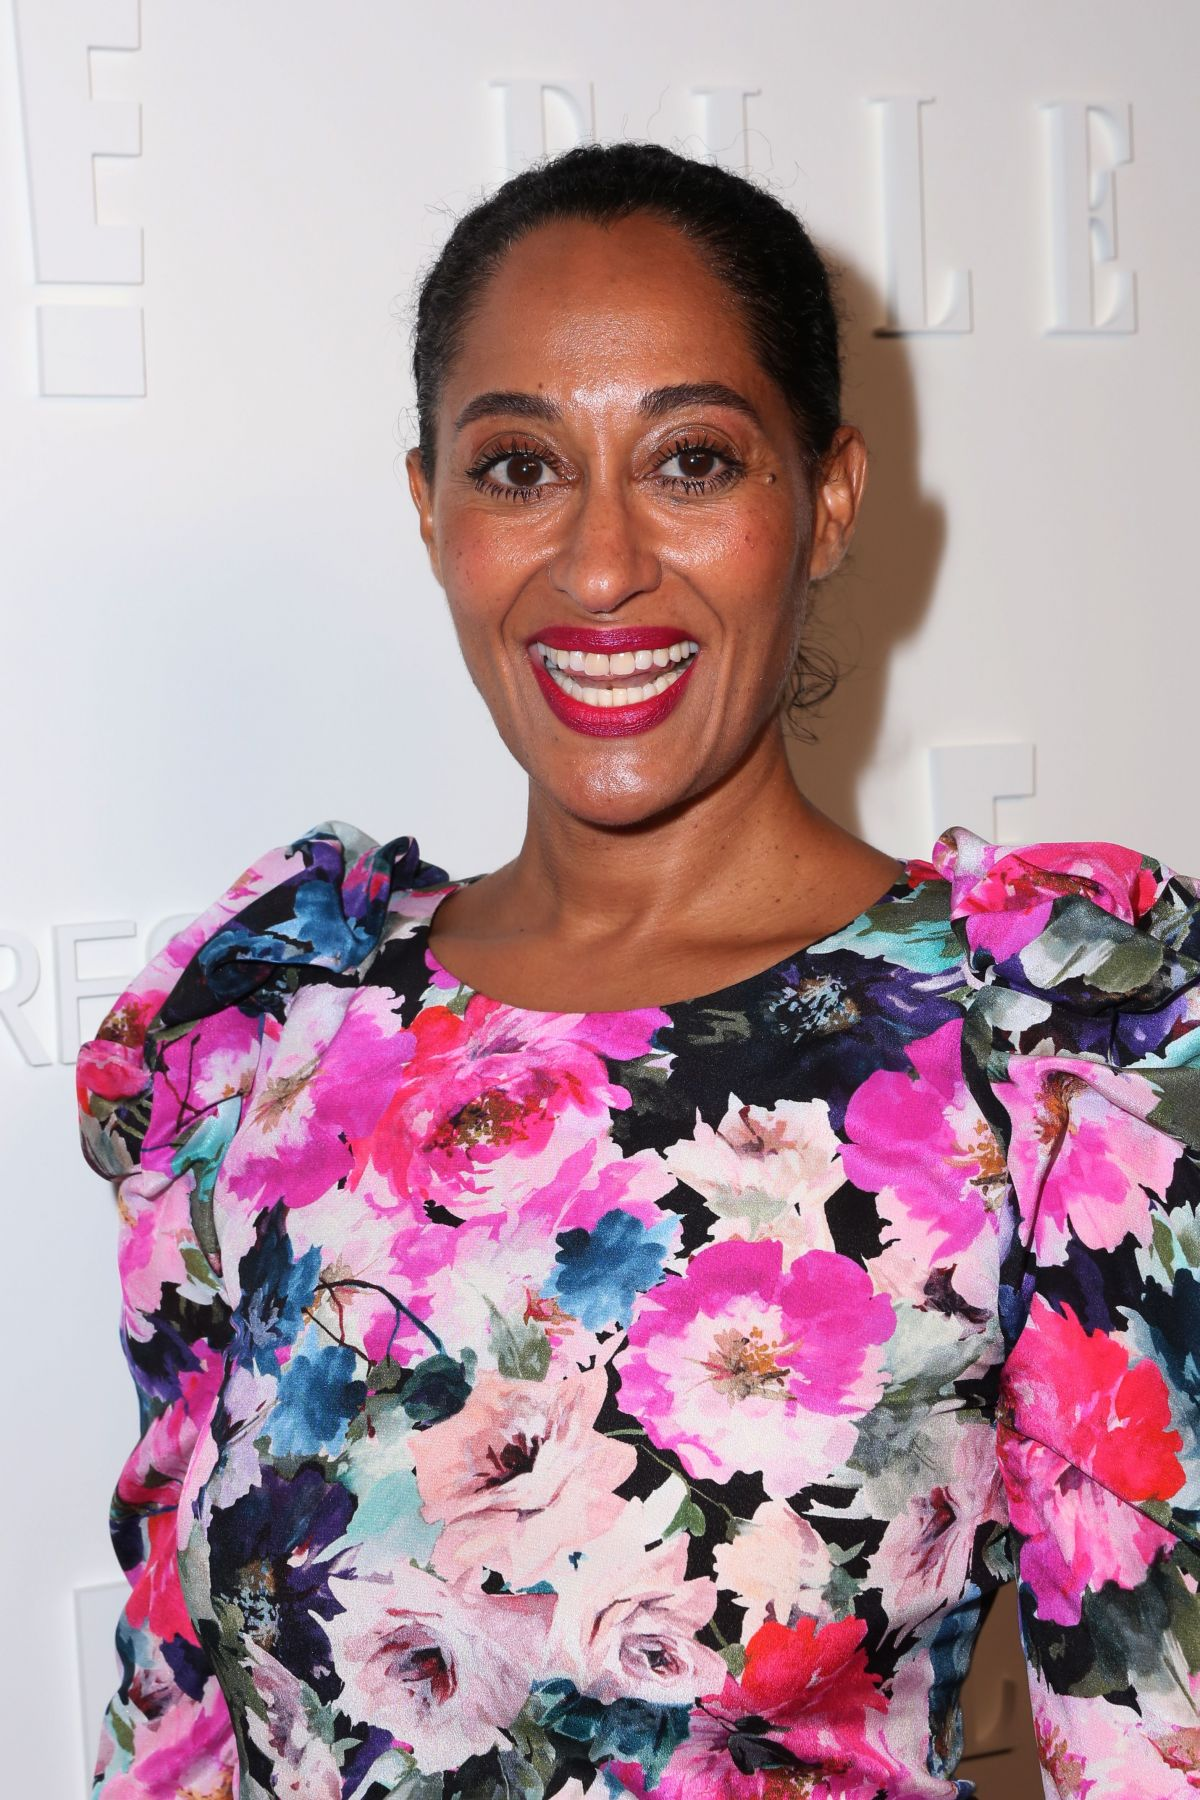 TRACEE ELLIS ROSS at E!, Elle & Img Host New York Fashion Week Kickoff Party 09/06/2017